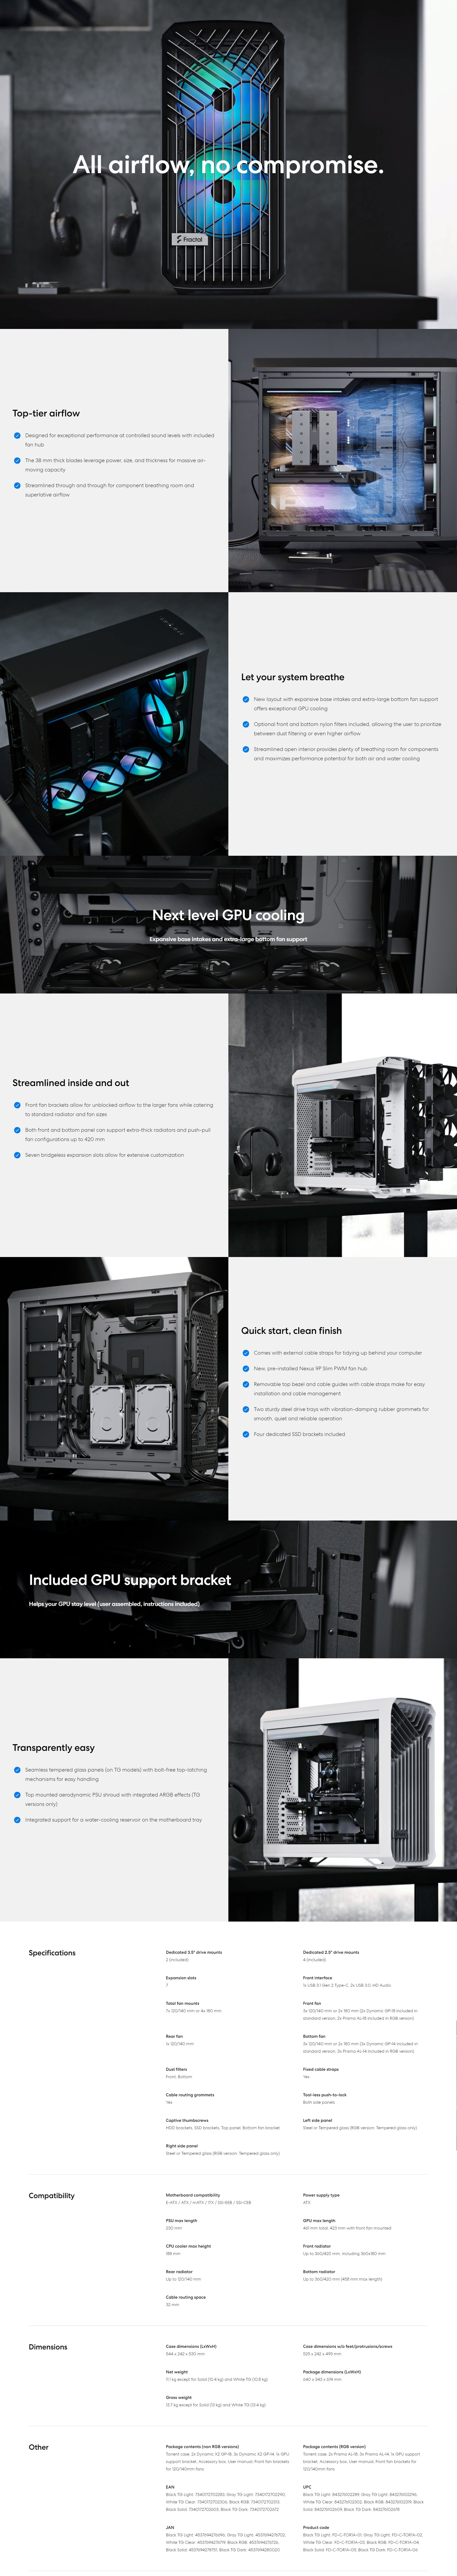 A large marketing image providing additional information about the product Fractal Design Torrent Dark Tempered Glass Mid Tower Case Black - Additional alt info not provided